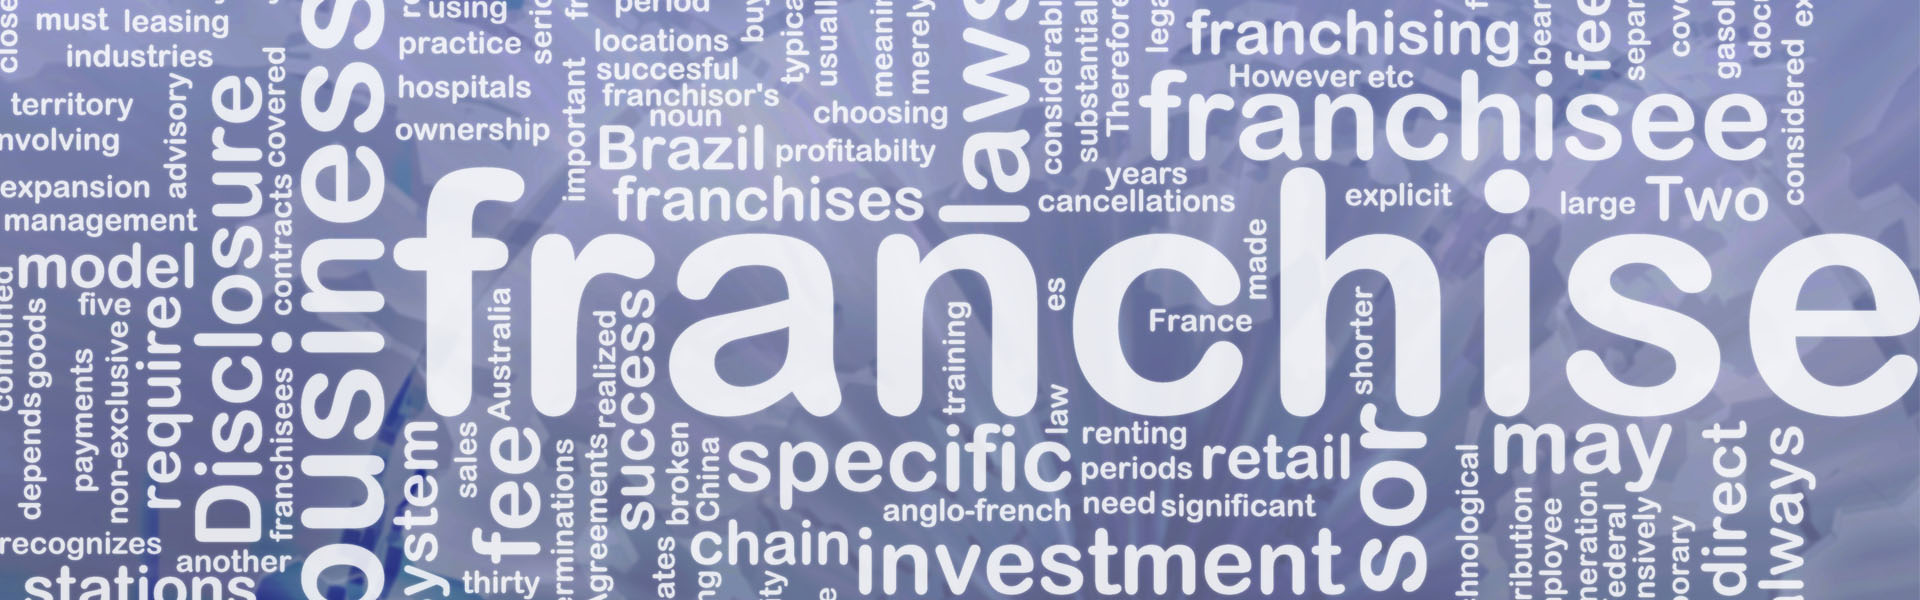 franchise restaurant accounting image